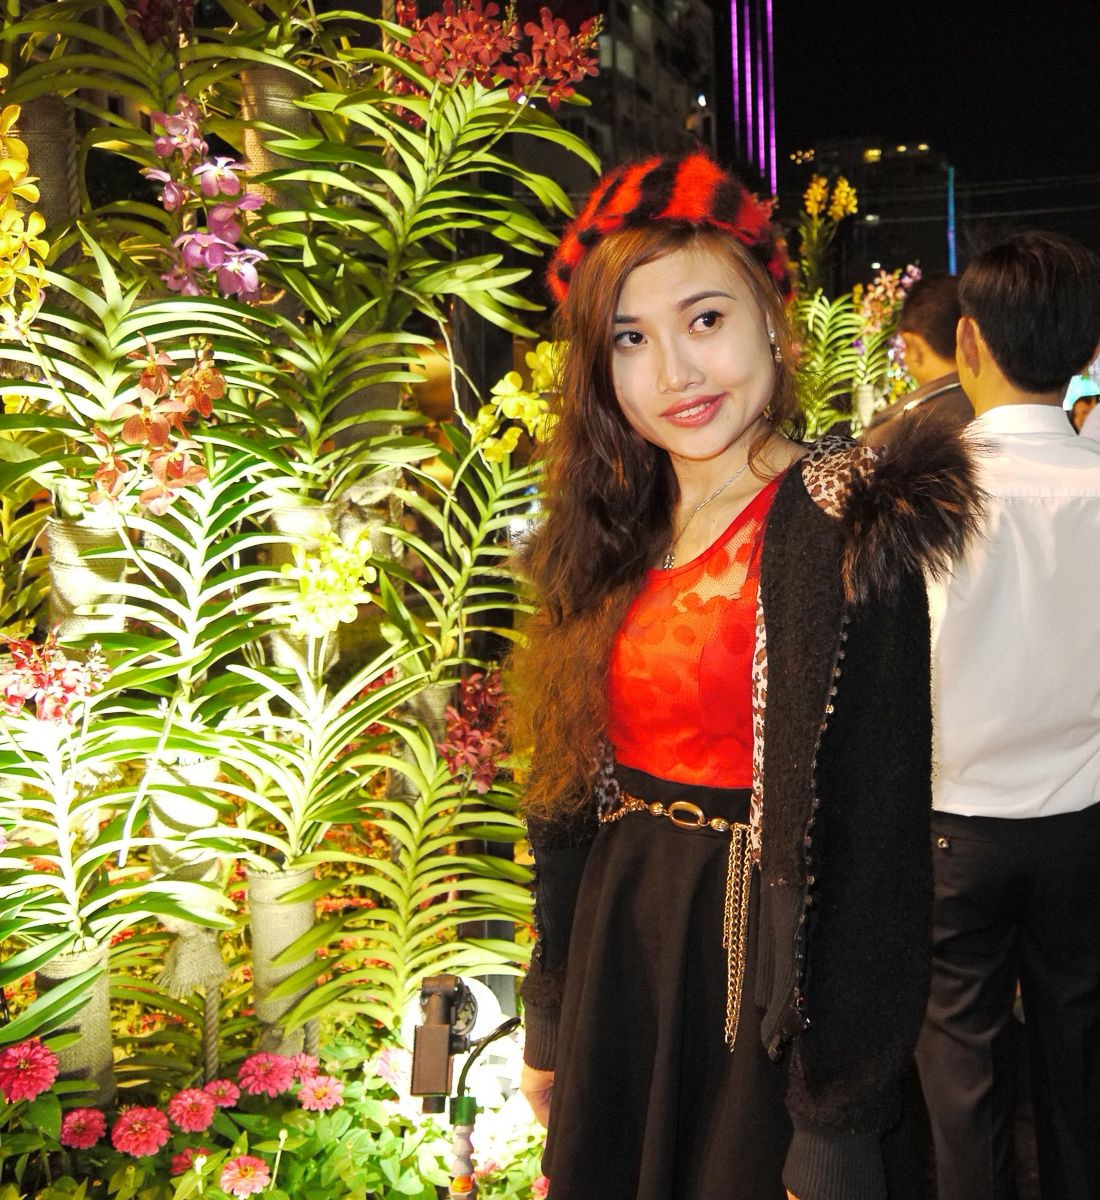 Vietnamese girl in the New Year's celebration. Vietnam